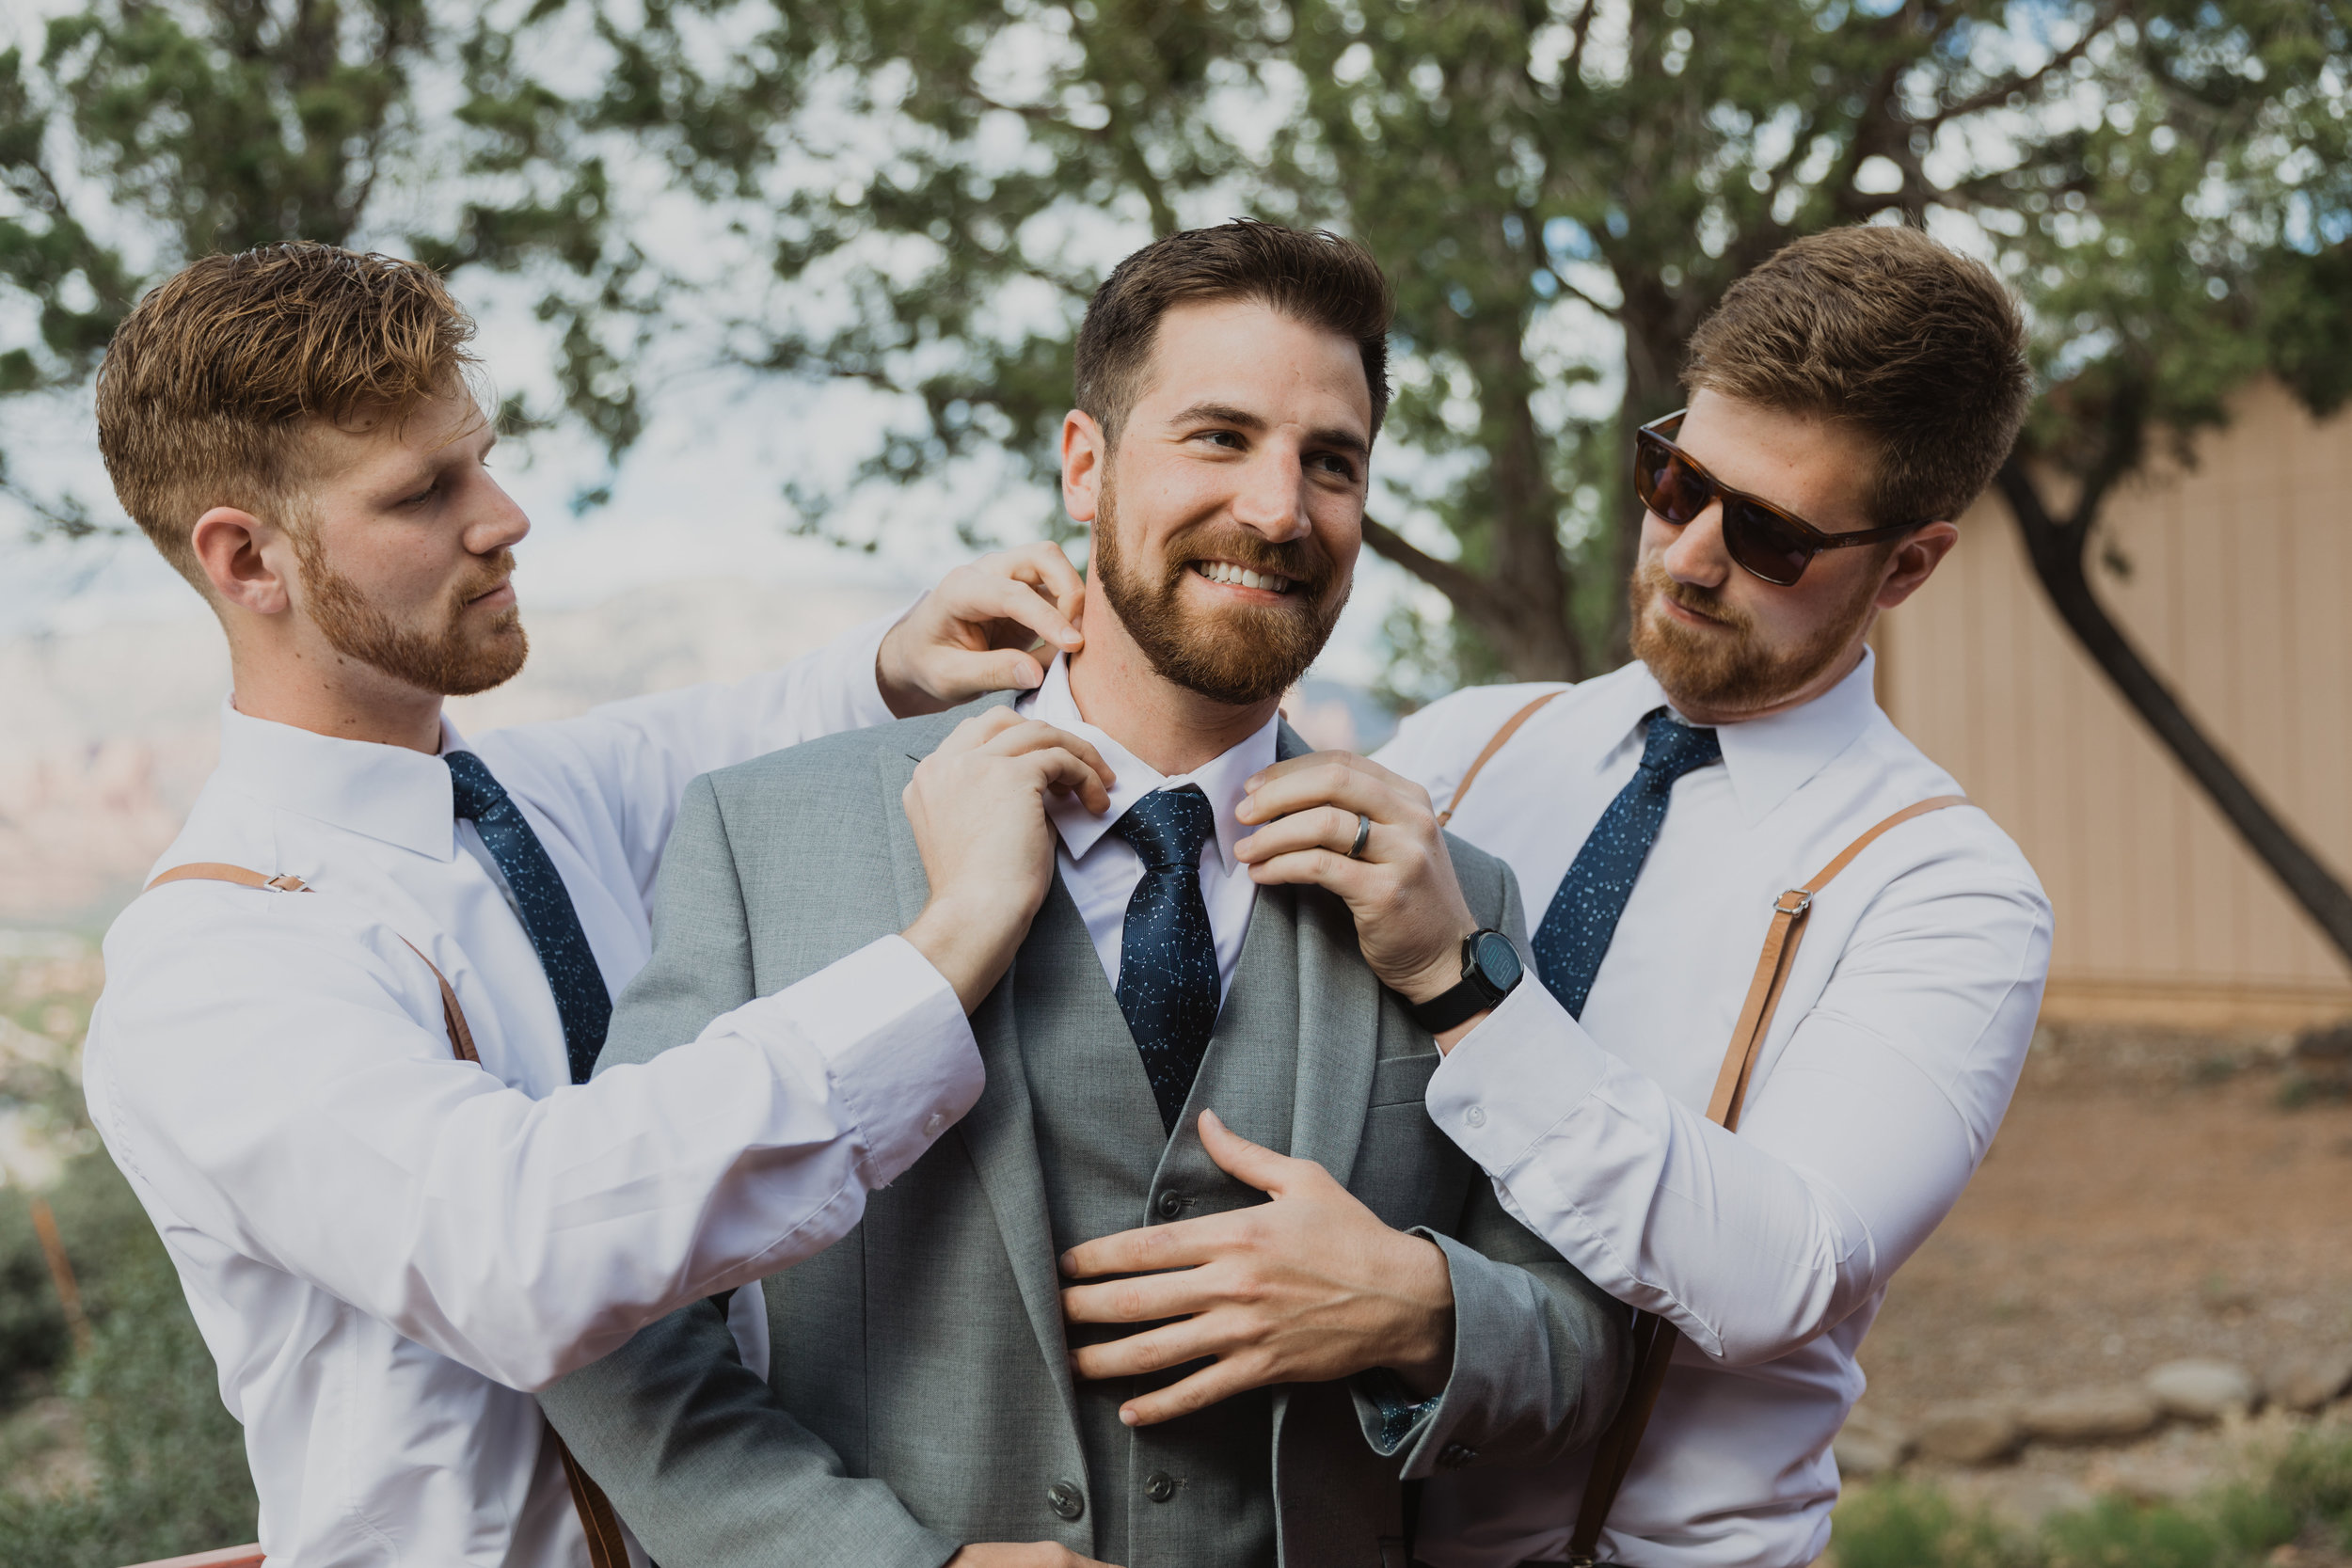 Stars and Moon Inspired Wedding in the Red Rocks of Sedona - Arizona Florist serving Phoenix scottsdale Mesa chandler Flagstaff Prescott - Groom and Groomsmen Getting Ready